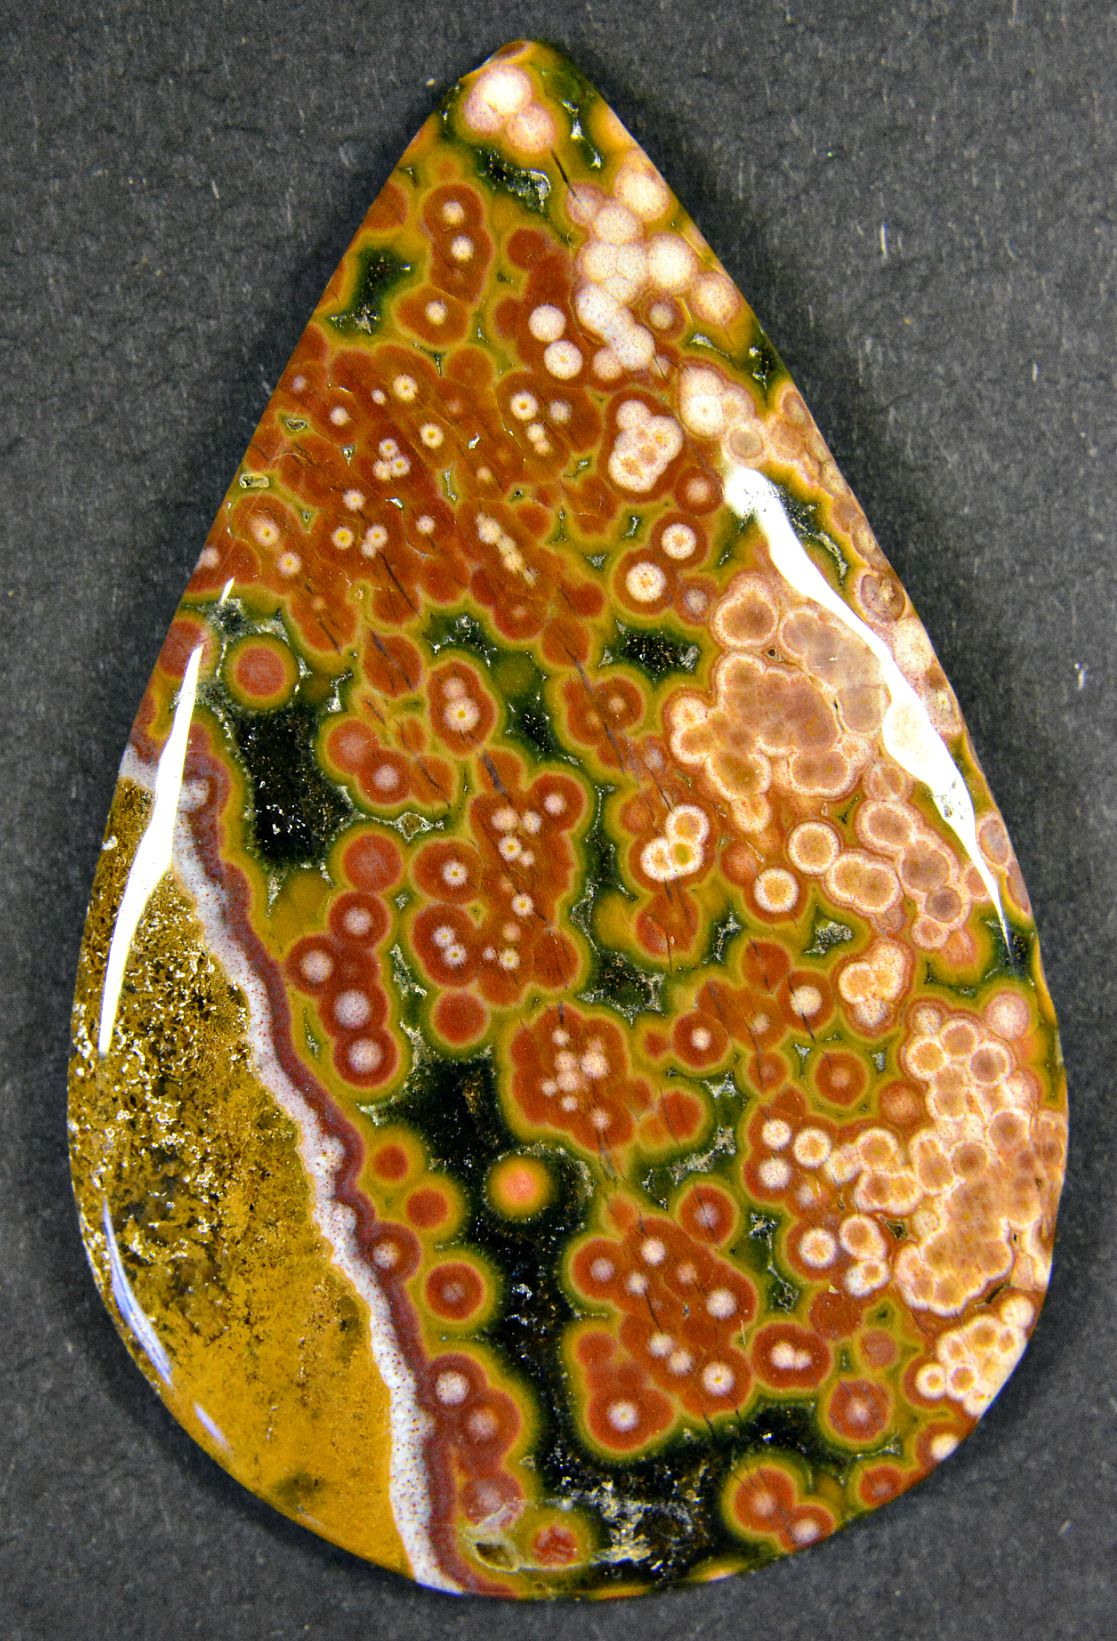 cabochon jasper quartz natural